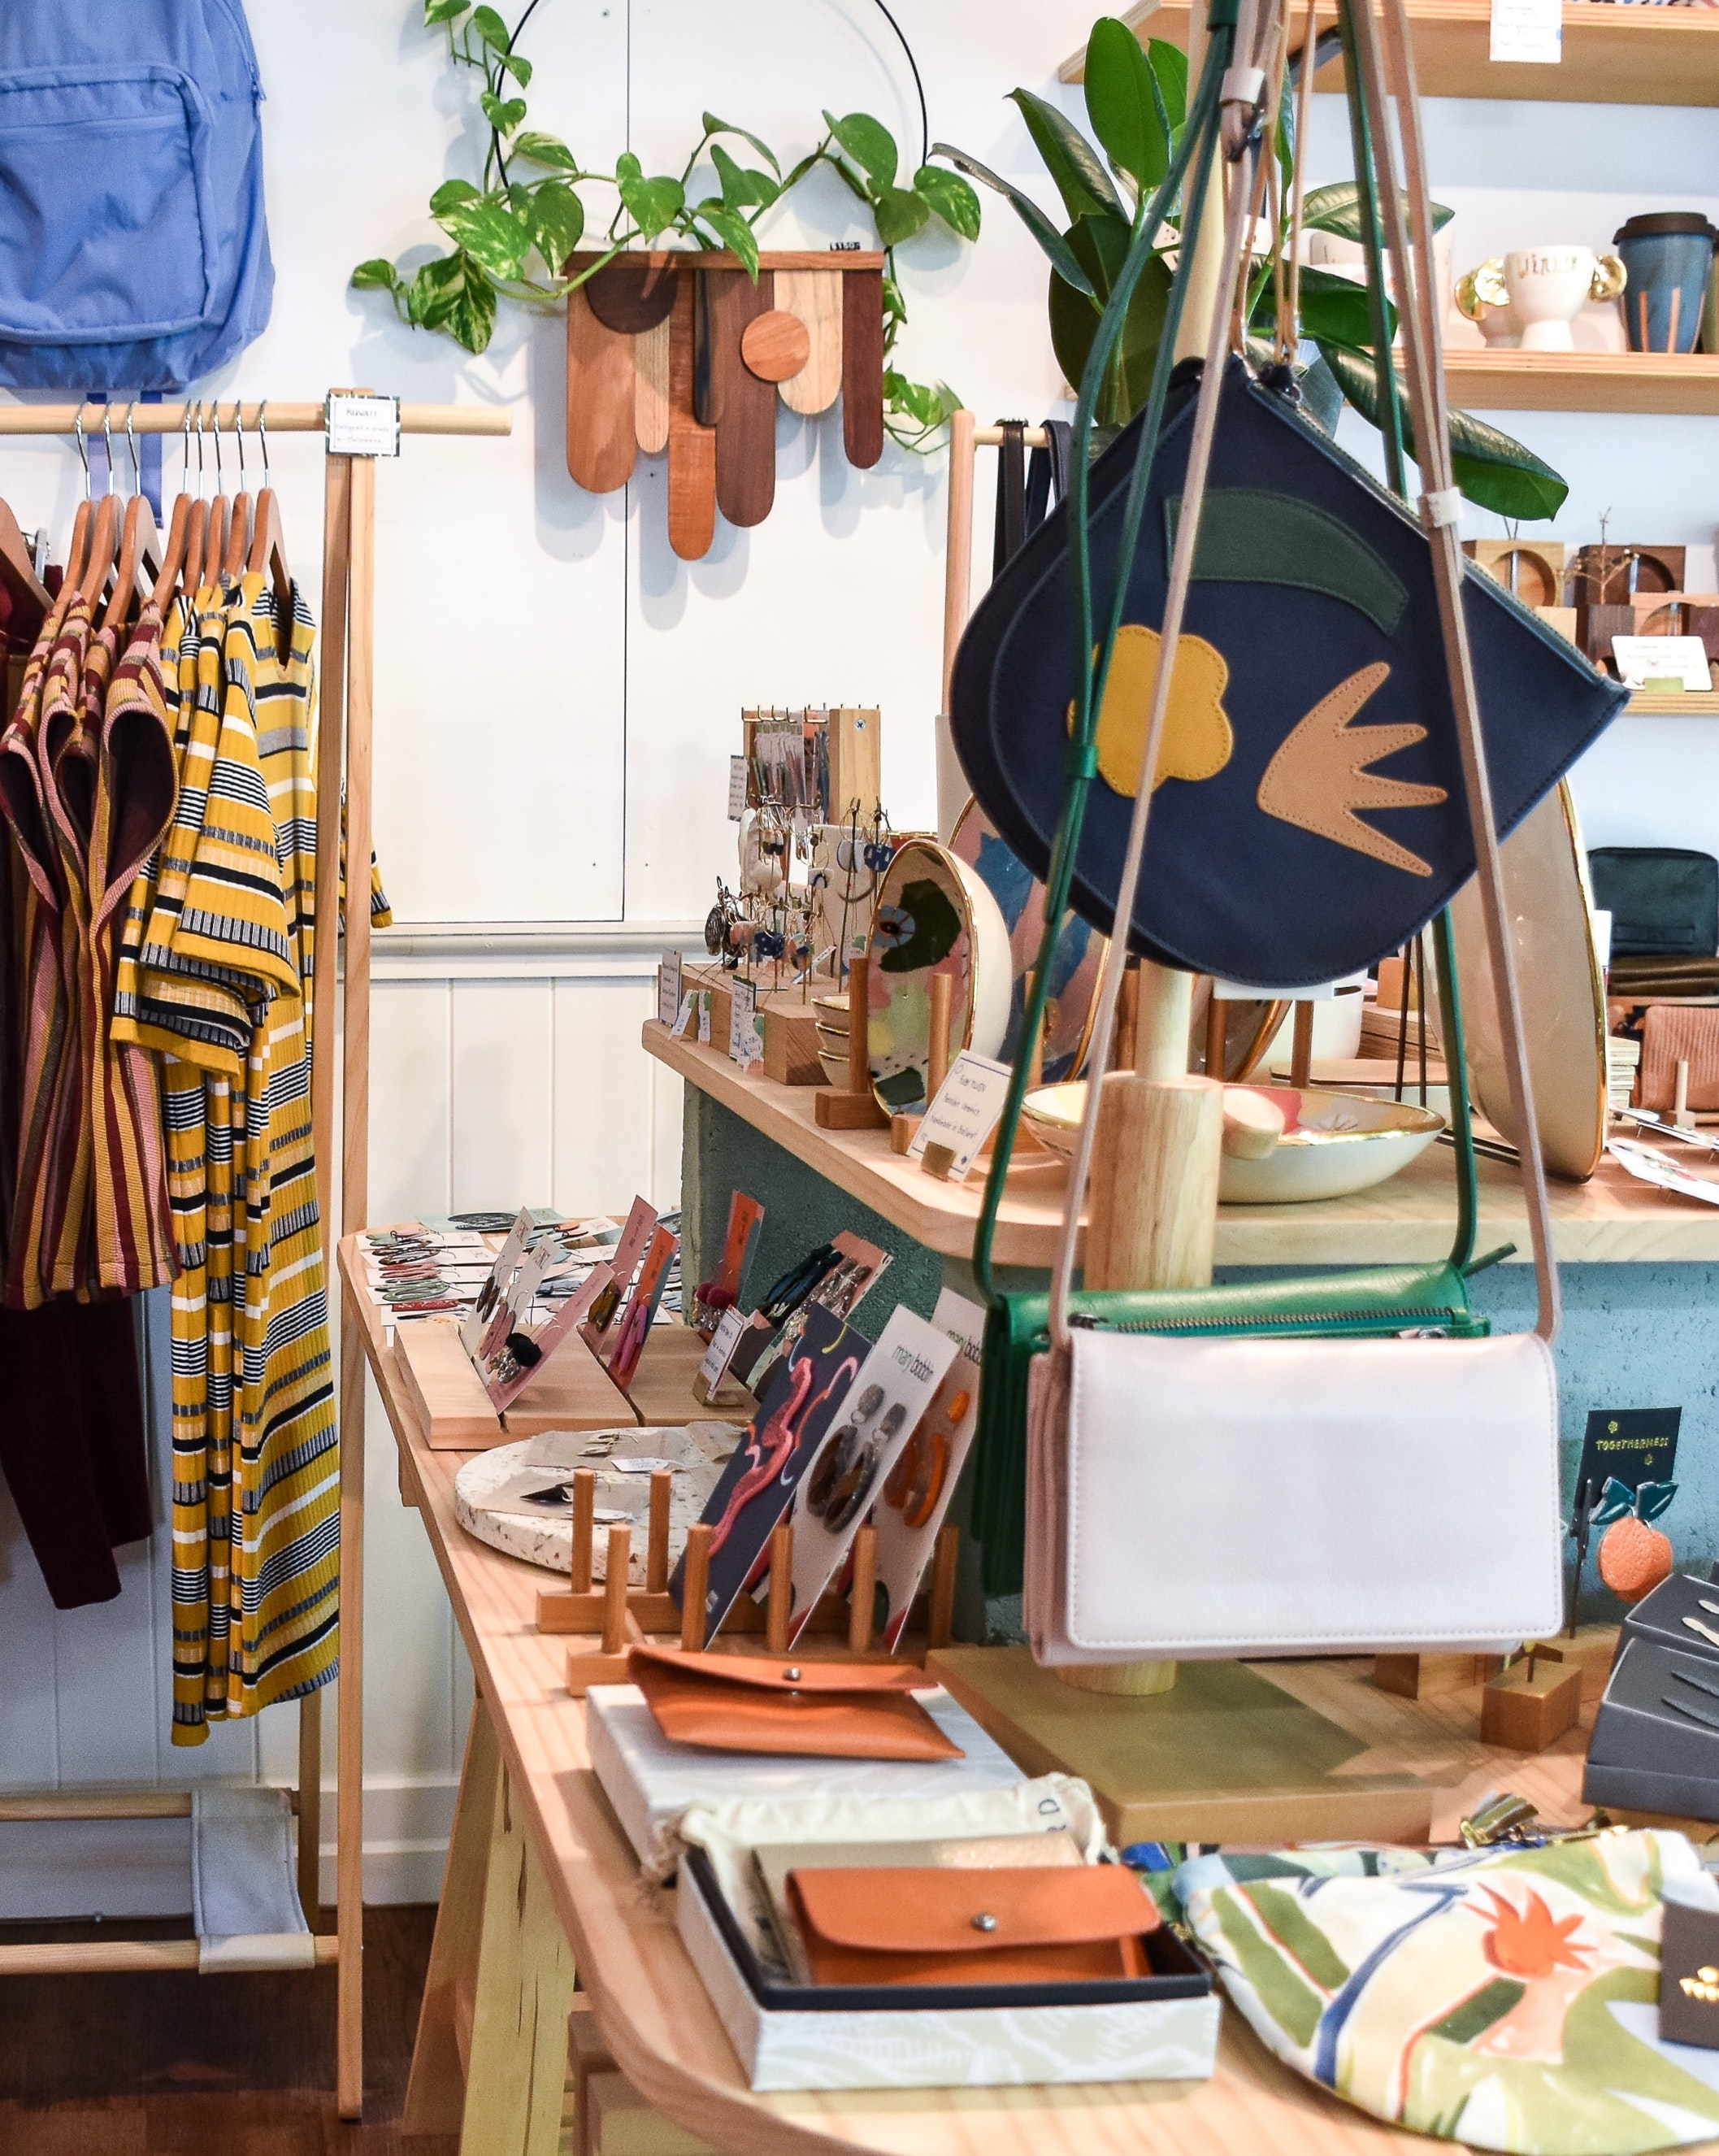 A photo of the interior of Square One Goods in Birmingham, AL. Lots of items are displayed like clothing, bags, clutches, and more.